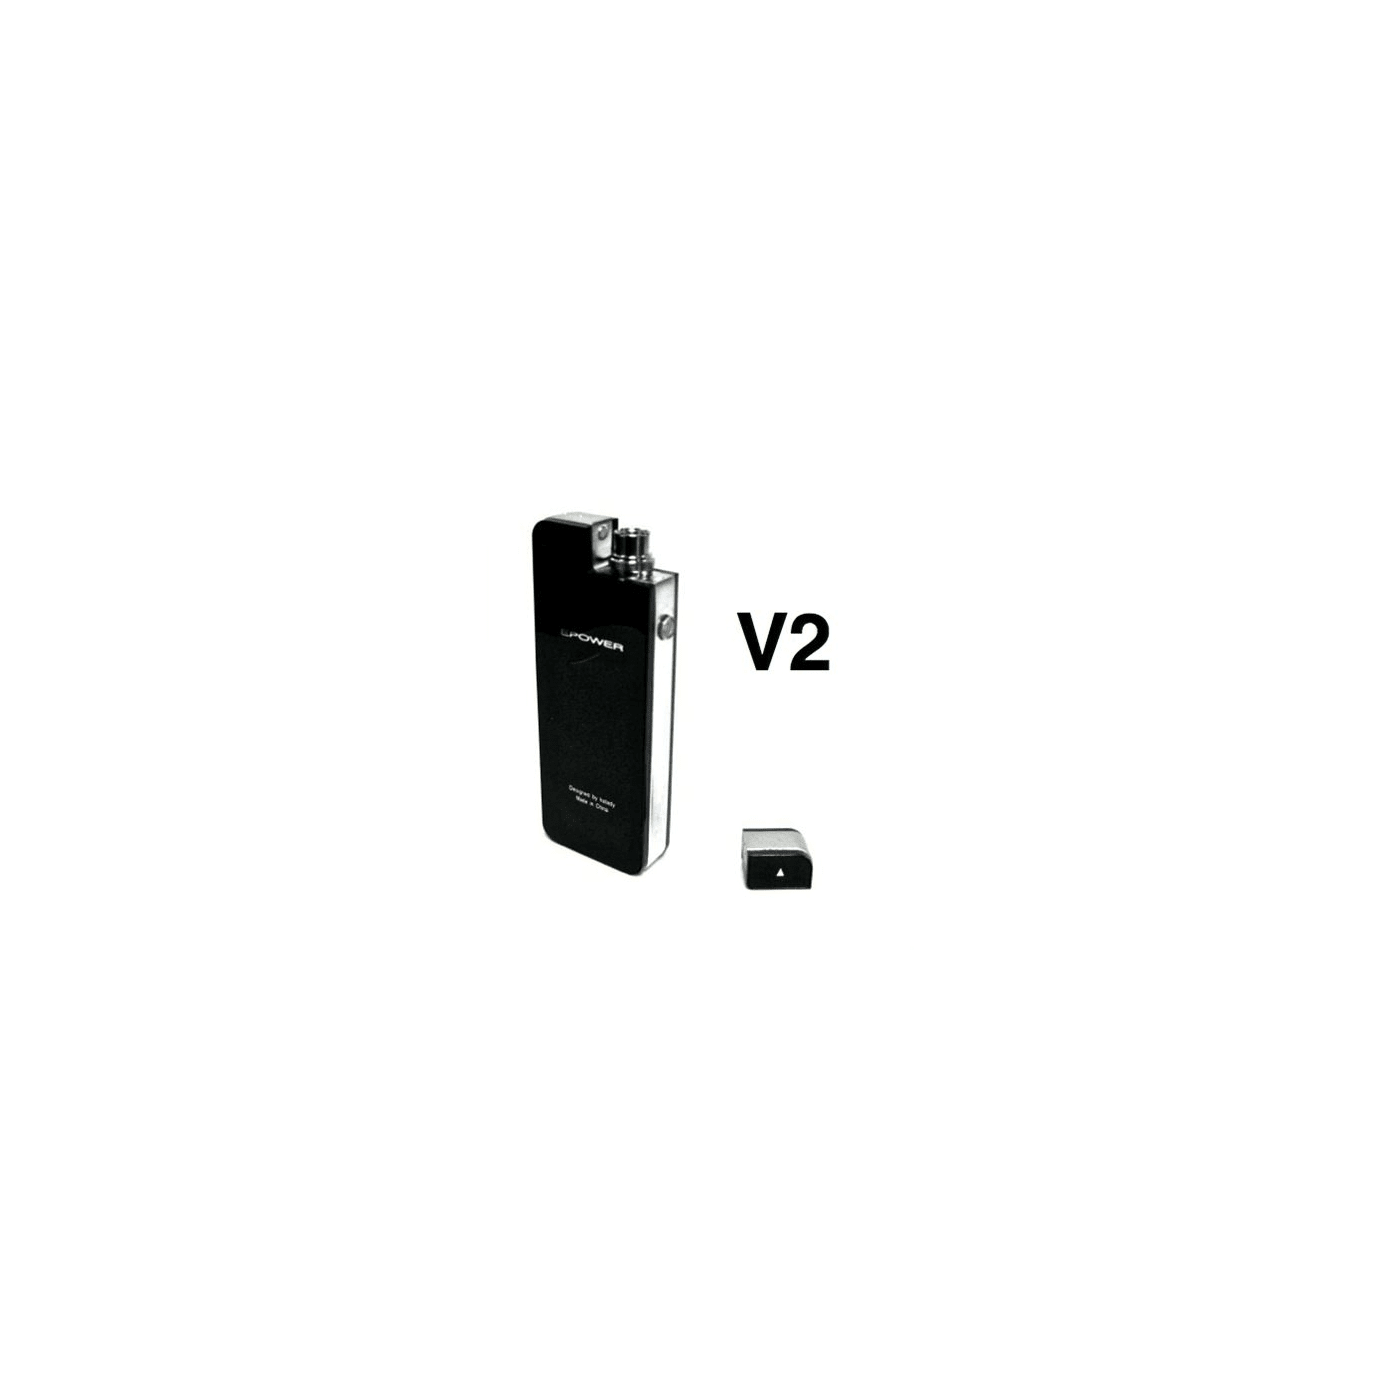 E-Power 2 - 2200 mAh - Variable Voltage Mod